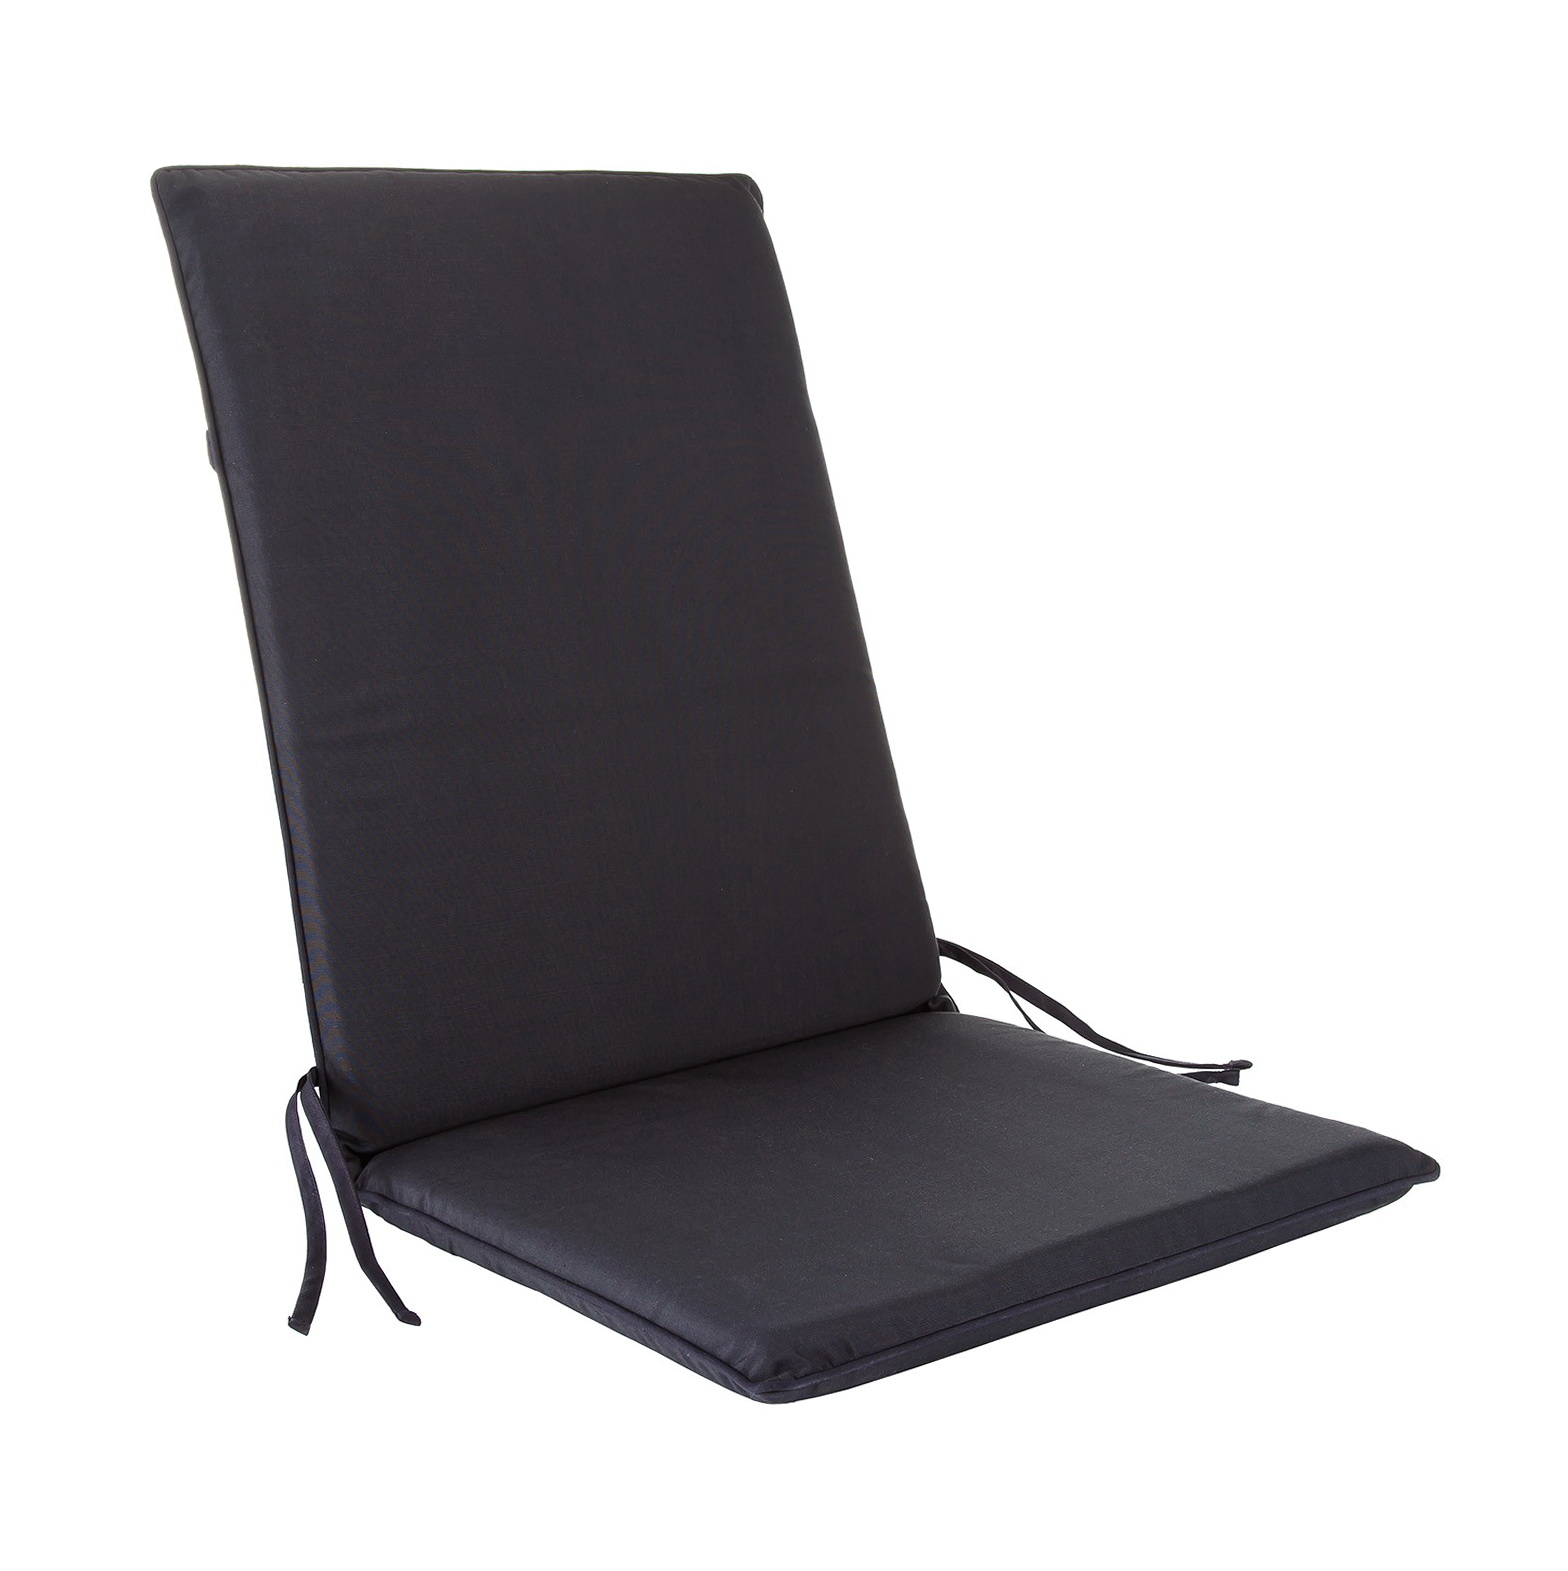 Seat Cushions For Dining Chairs Uk